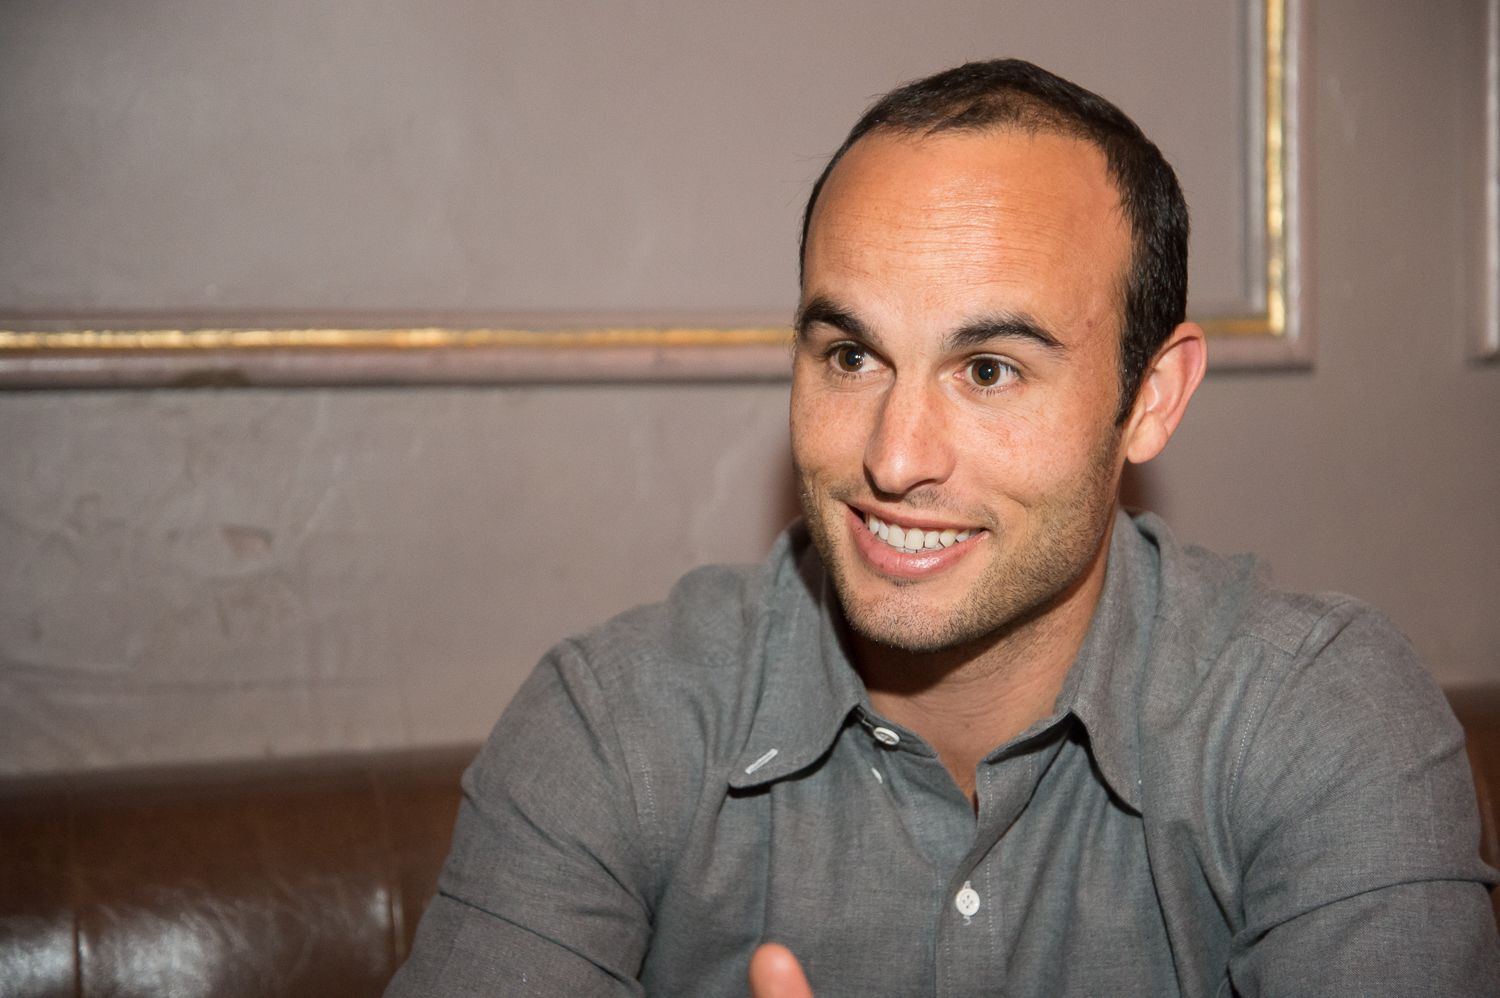 U.S. Soccer Star Landon Donovan & Captain Morgan Want To Make It Possible For Anyone Under 35 To Run For President